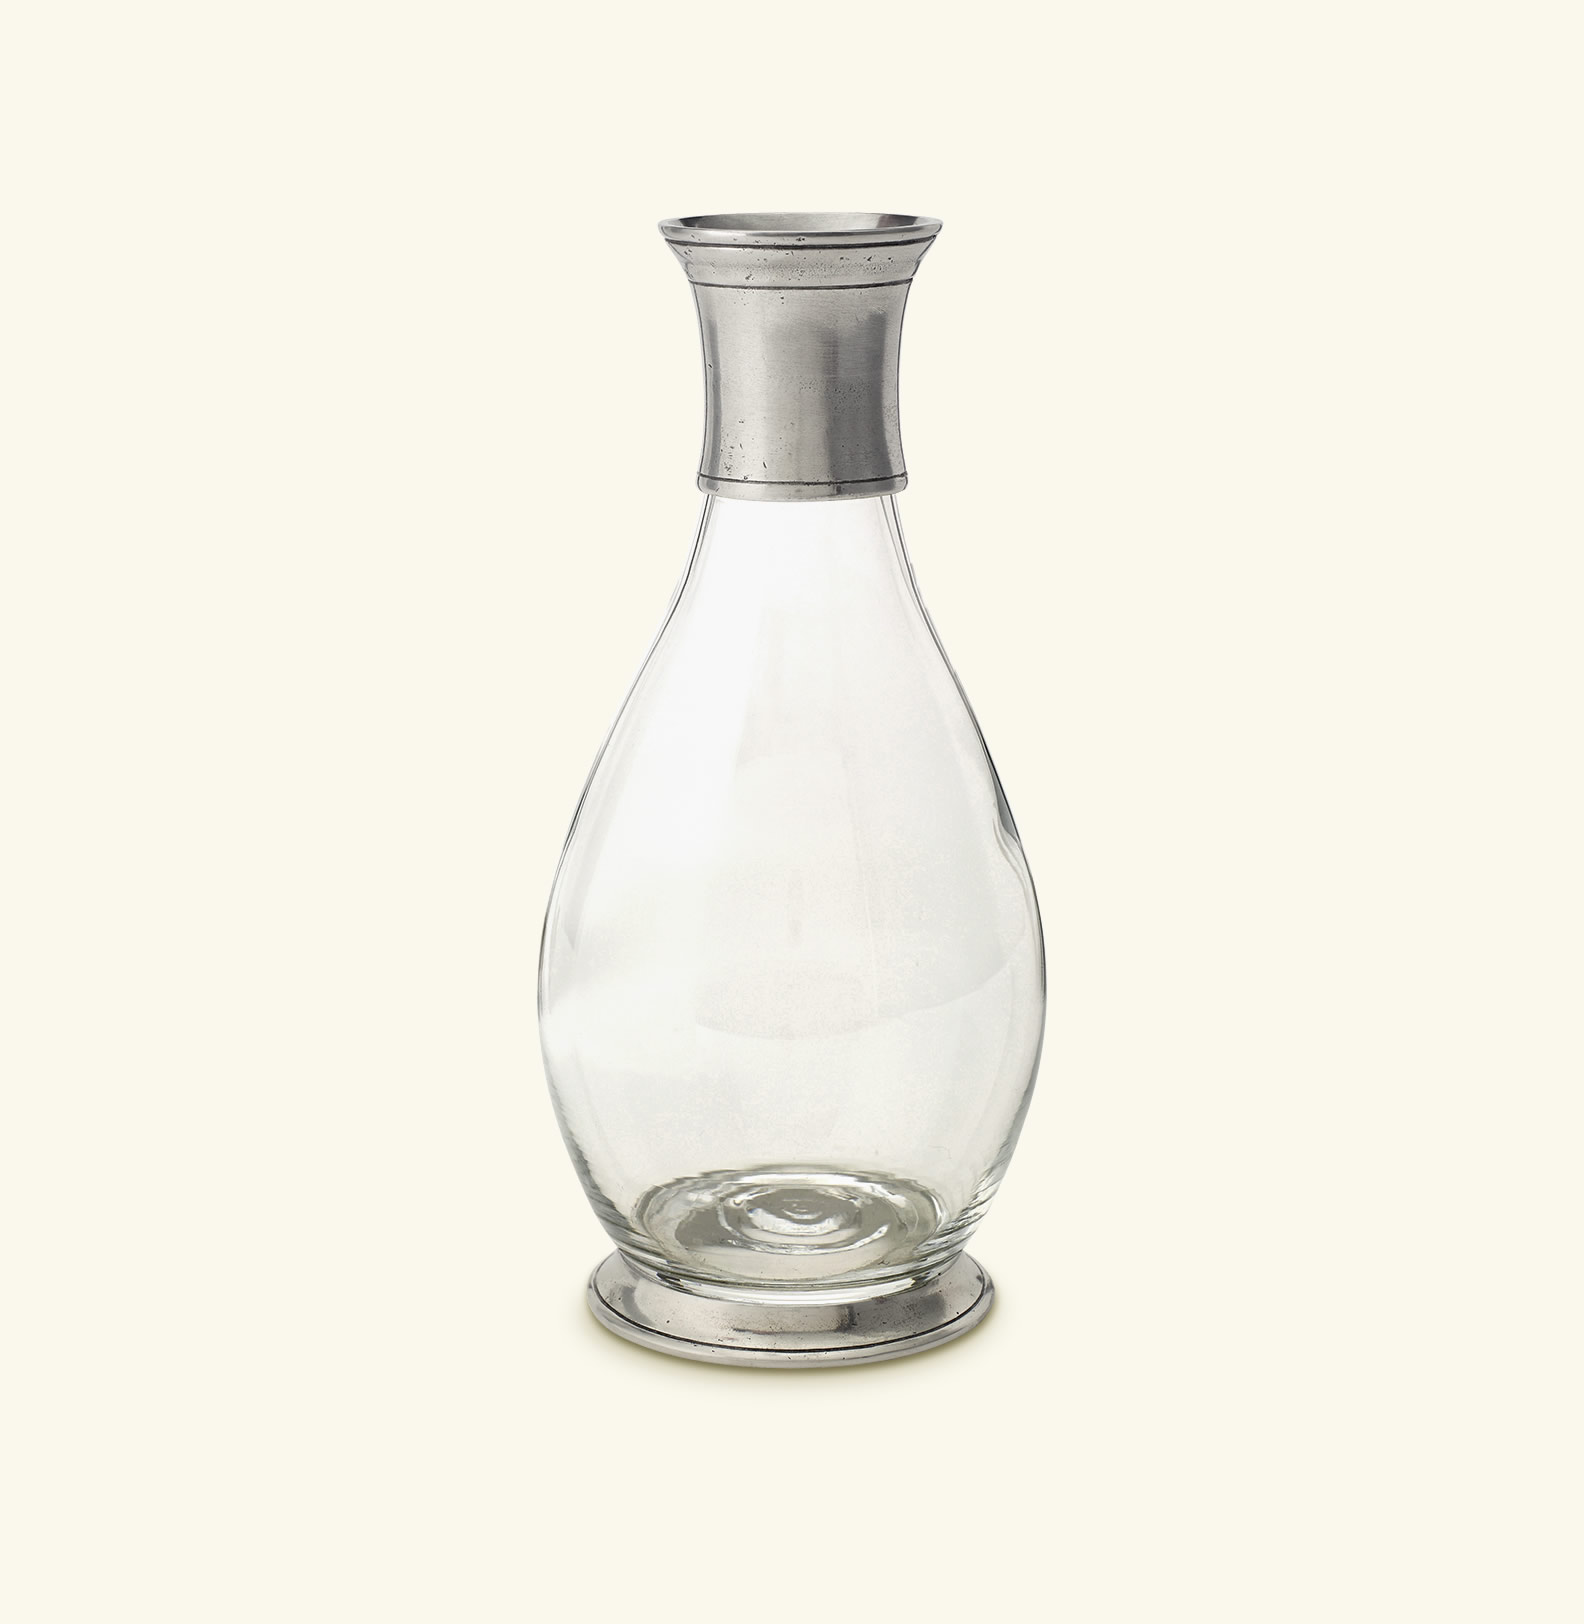 match-tall-carafe-with-collar-9.5-in-32-oz-1043.6.jpg